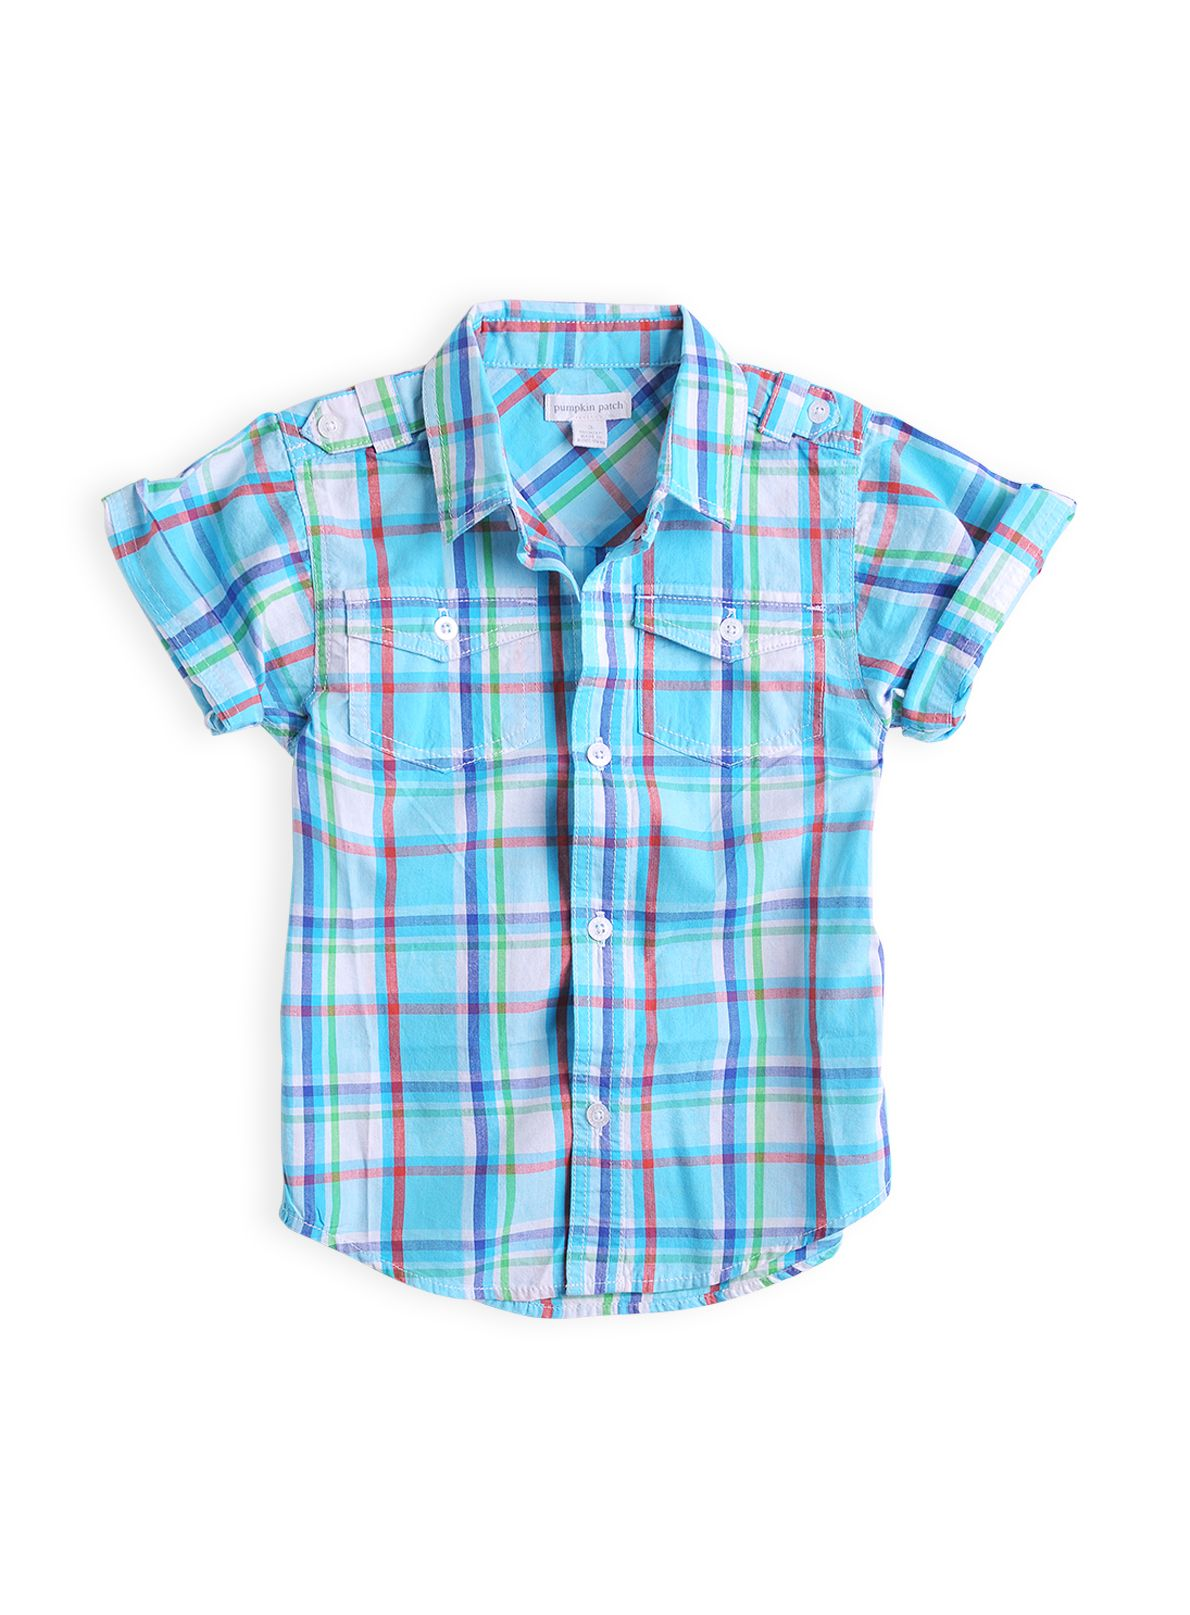 Boys check short sleeve shirt